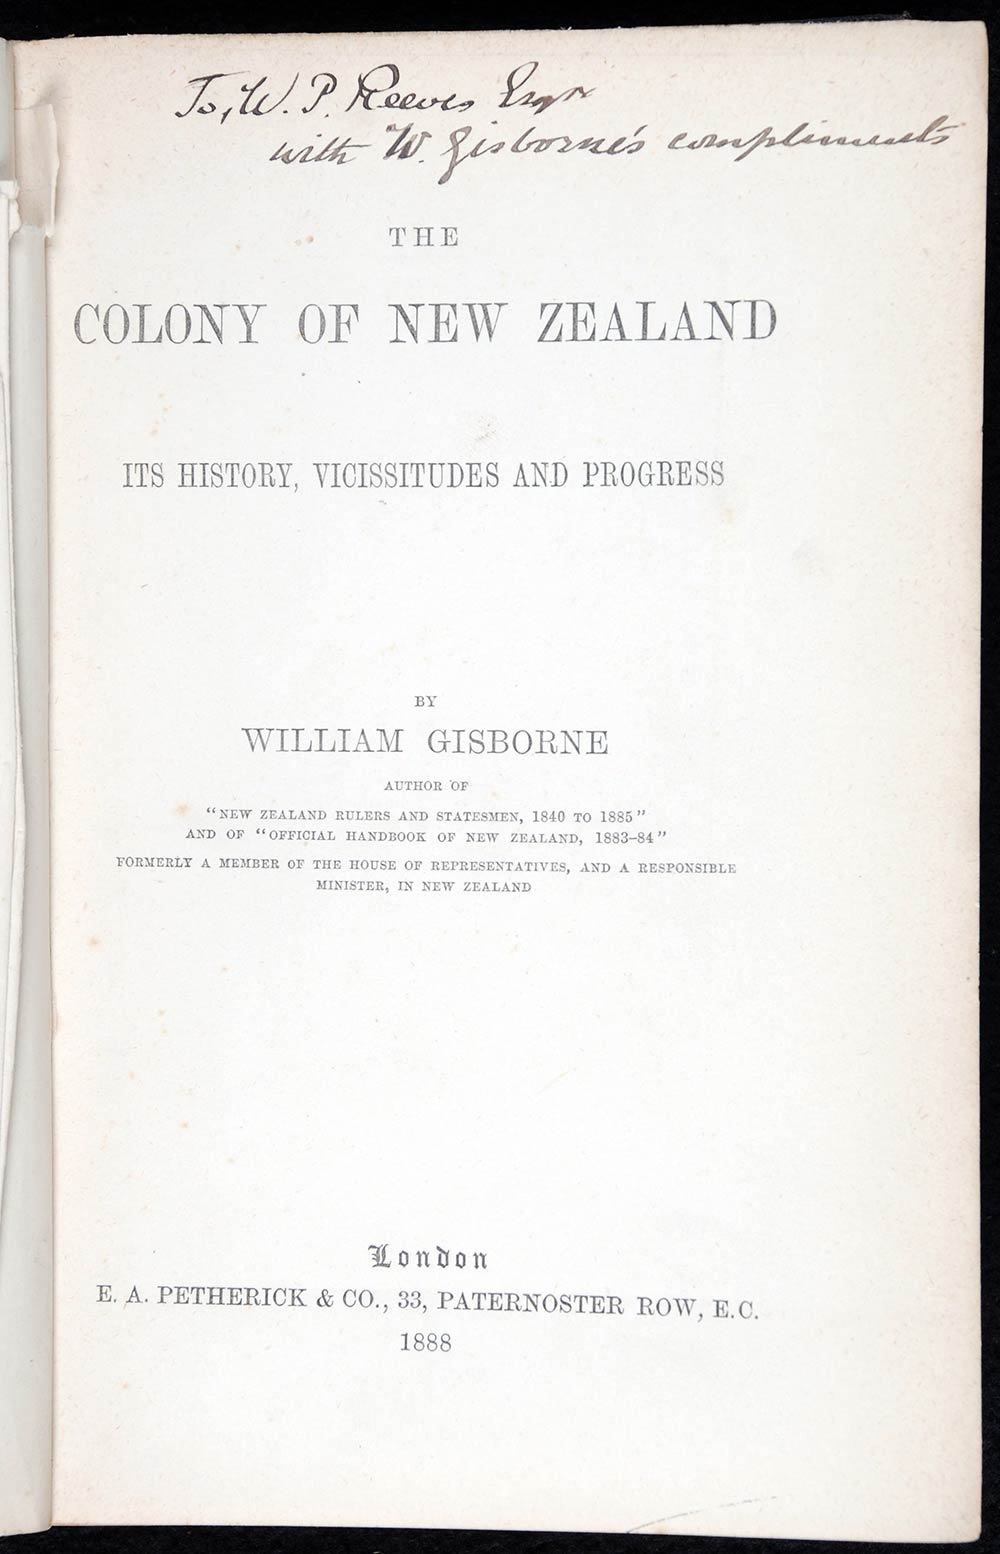 William Gisborne. <em>The colony of New Zealand: its history, vicissitudes and progress</em>. London: E.A. Petherick, 1888.